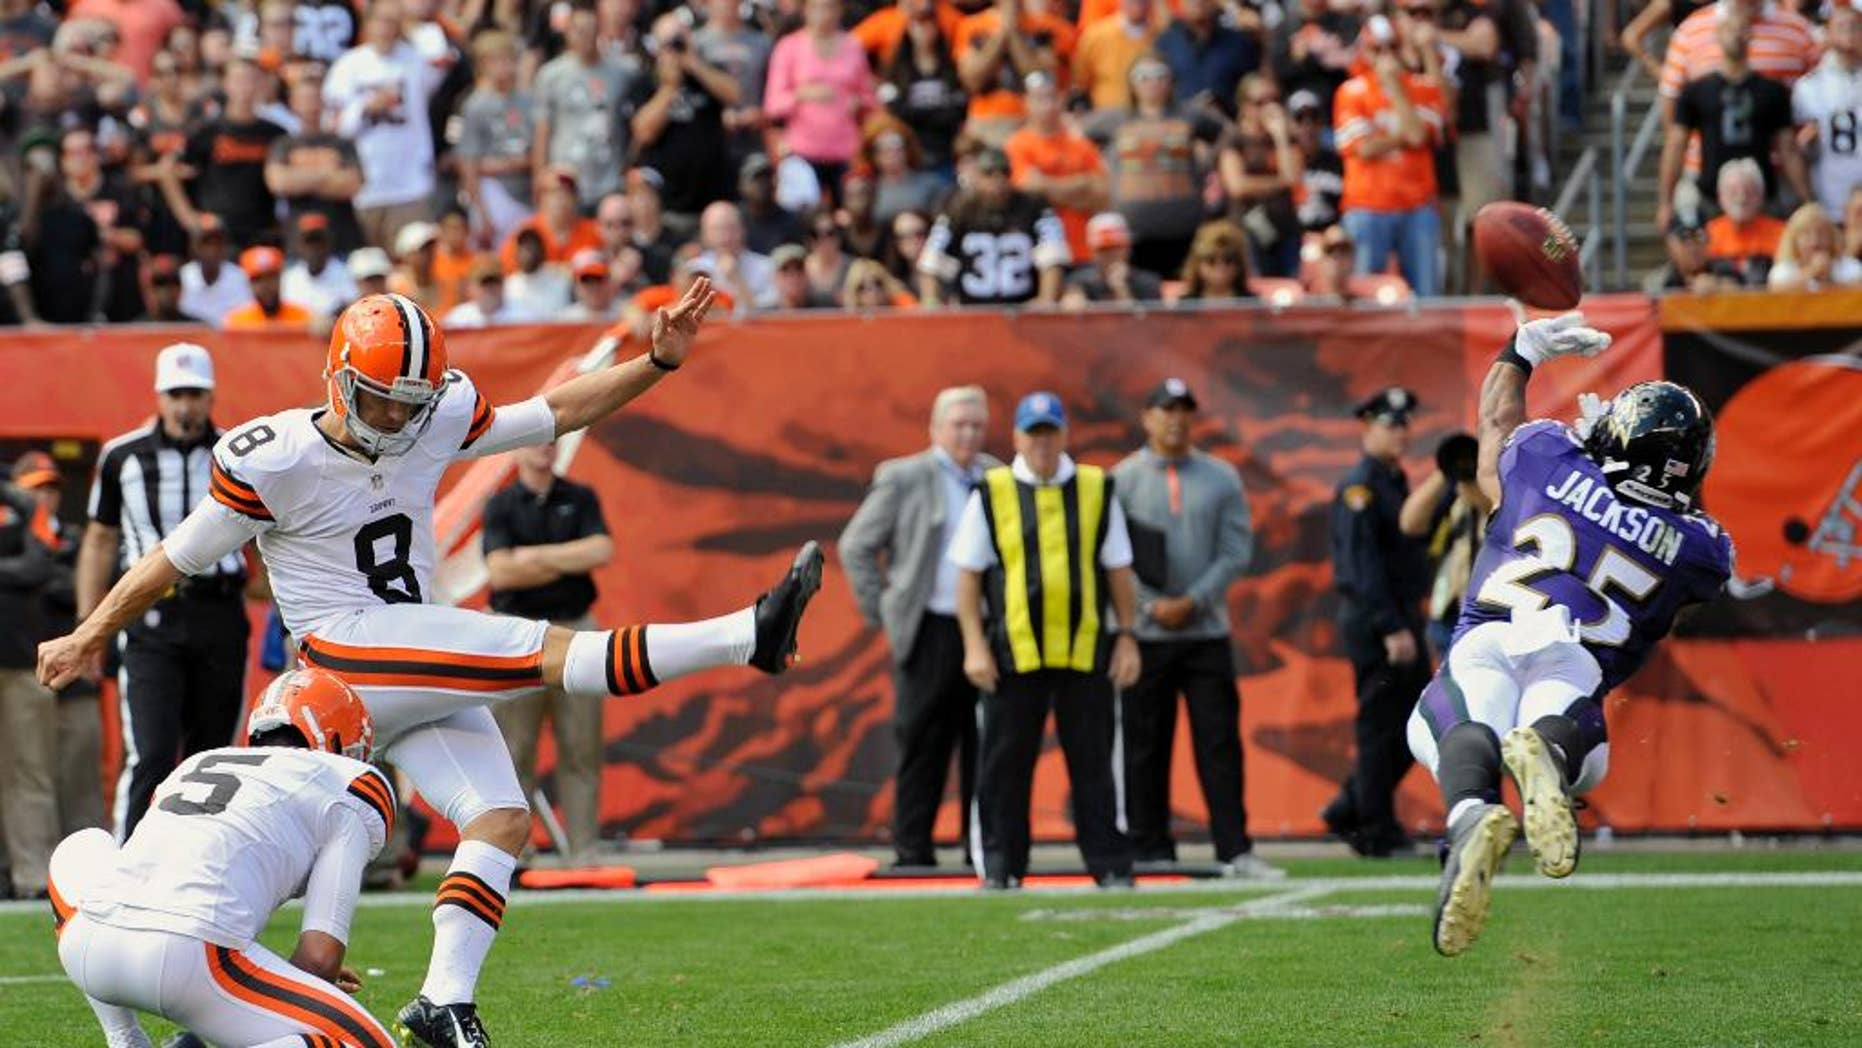 Baltimore Ravens cornerback Asa Jackson (25) blocks a field goal-attempt by Cleveland Browns kicker Billy Cundiff (8) in the fourth quarter of an NFL football game Sunday, Sept. 21, 2014, in Cleveland. (AP Photo/David Richard)